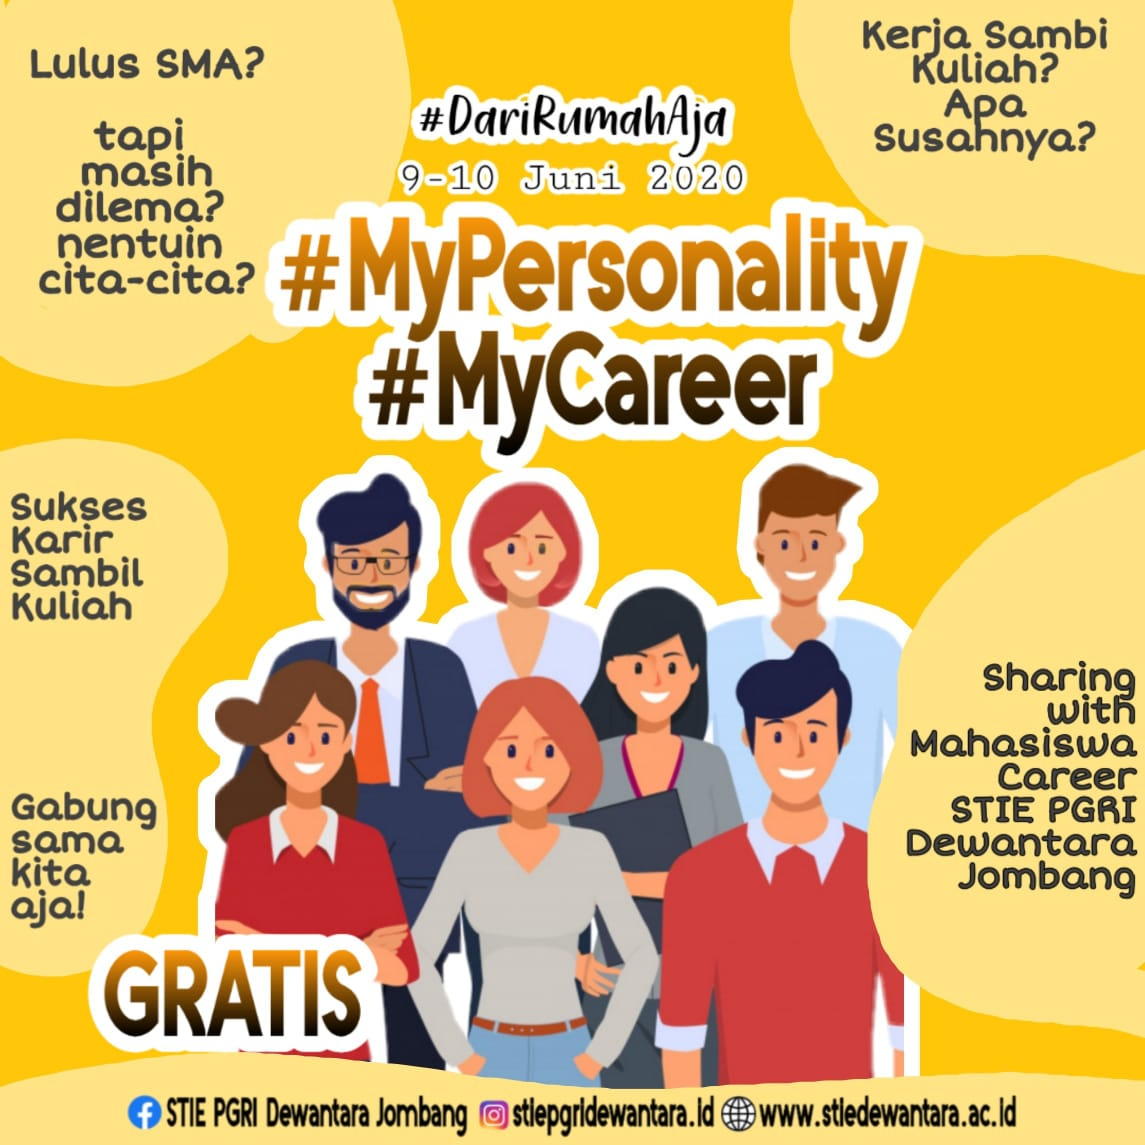 MY PERSONALITY, MY CAREER WITH STIE PGRI DEWANTARA JOMBANG